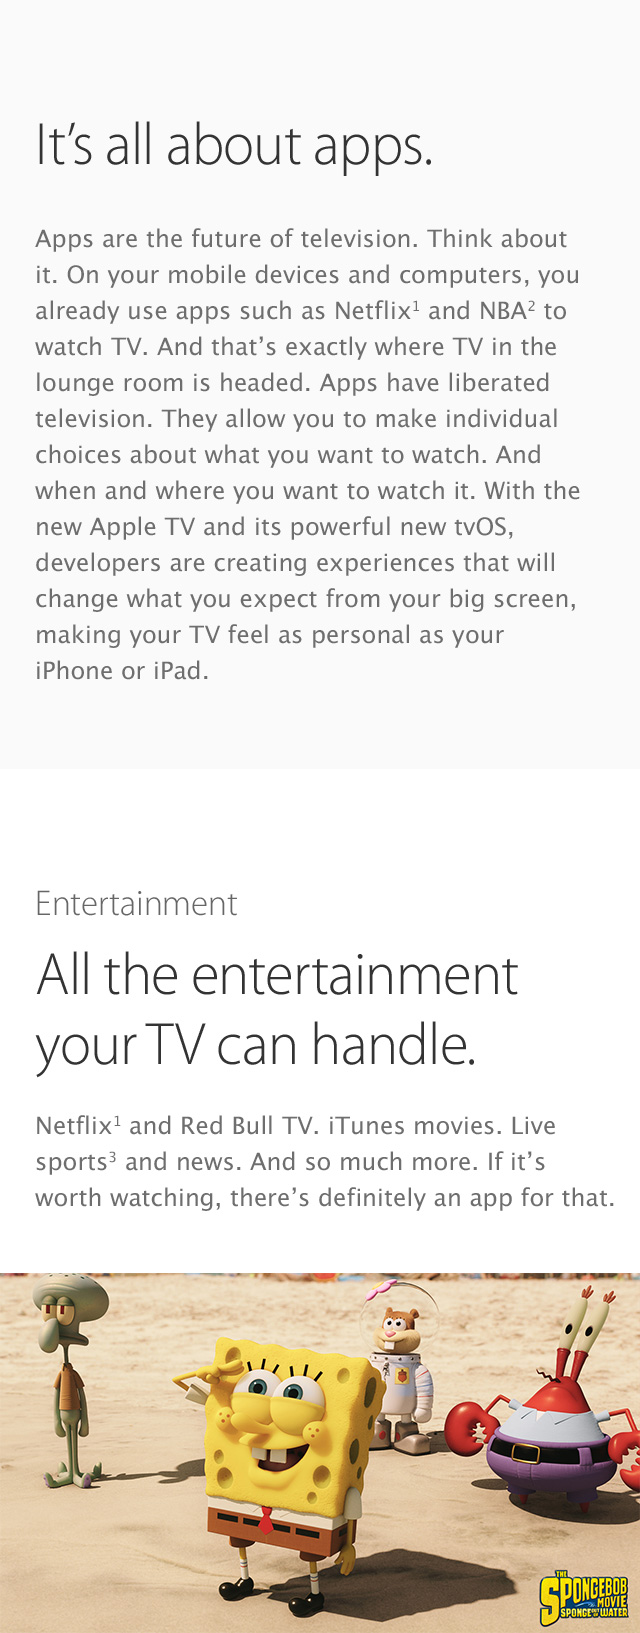 Apple TV features